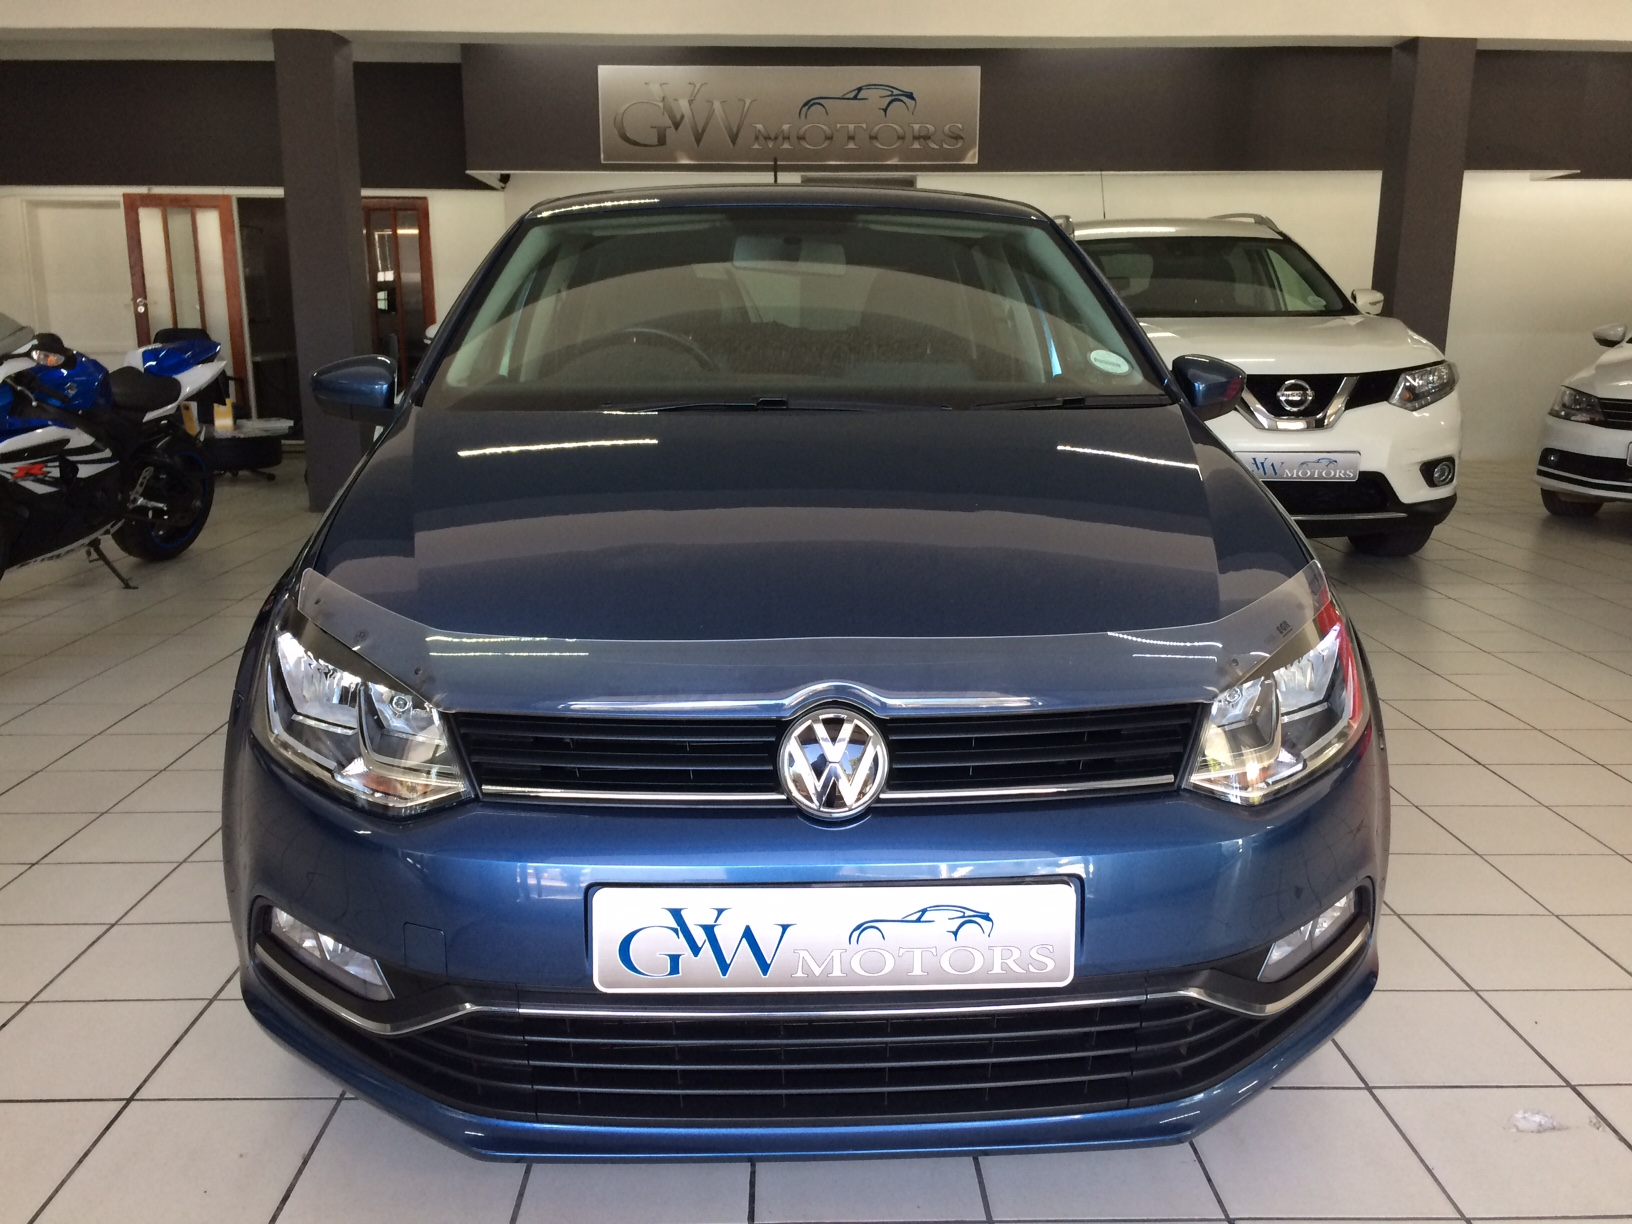 Polo Tsi Automatic For Sale In Gauteng Anlis